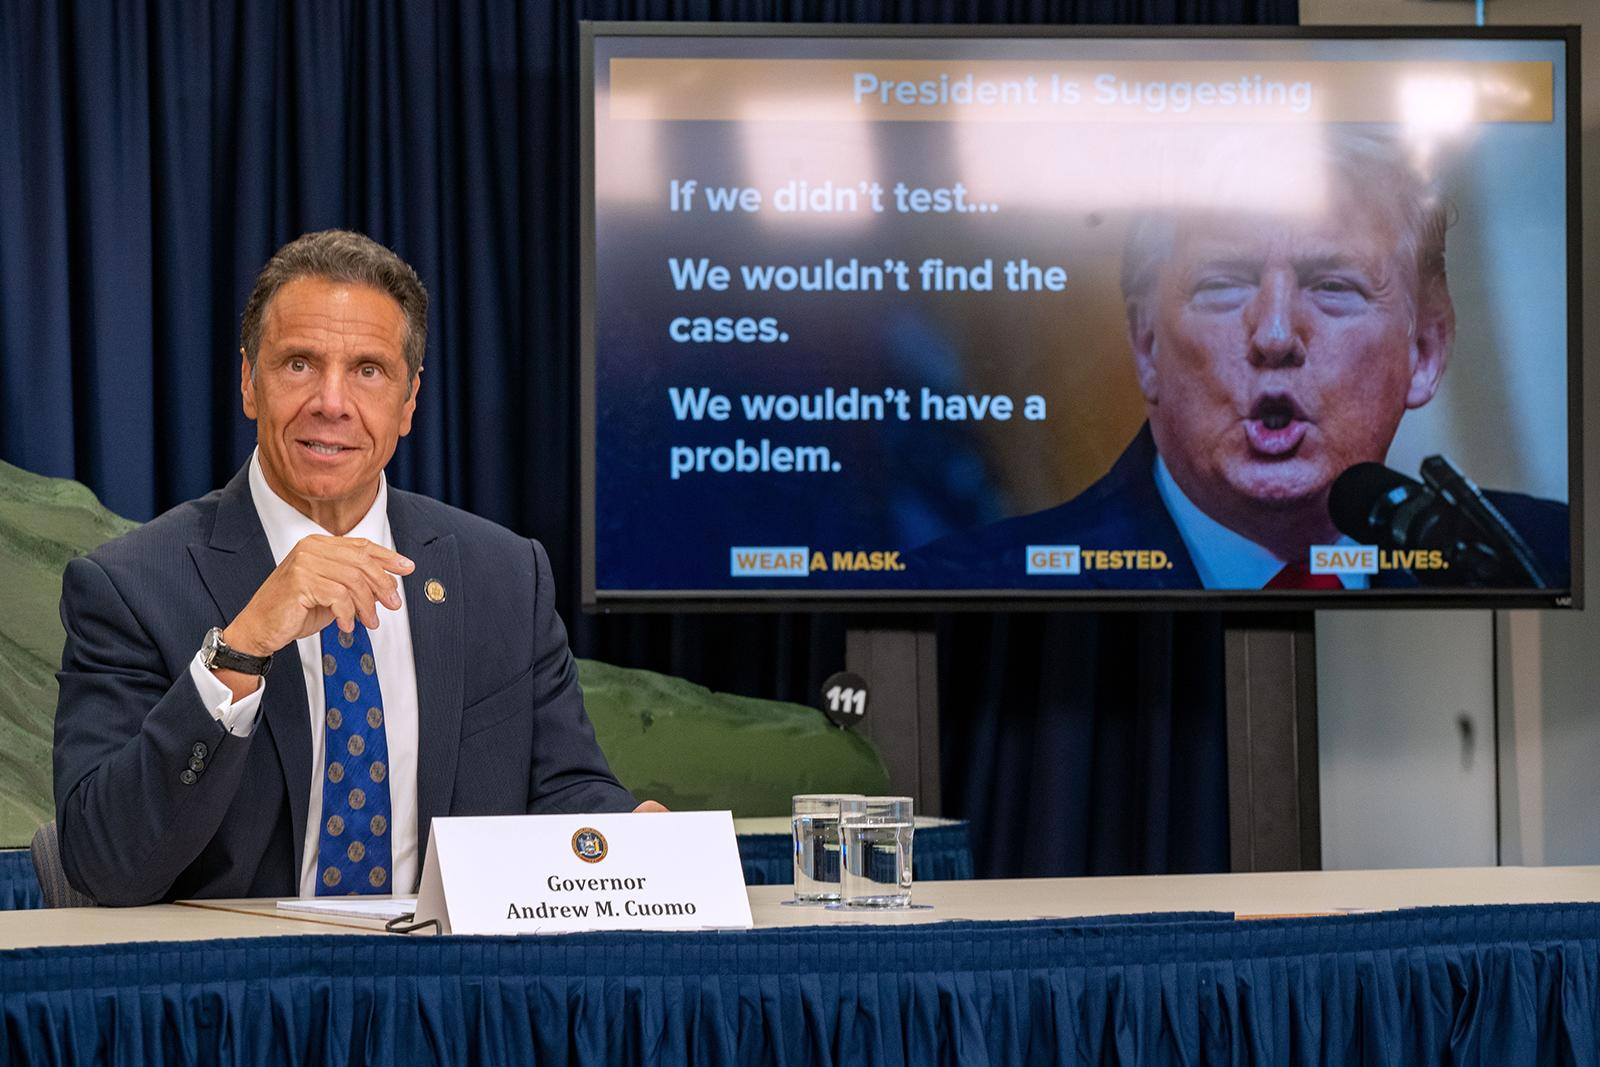 Commentary: Gov. Cuomo's cringeworthy COVID victory lap